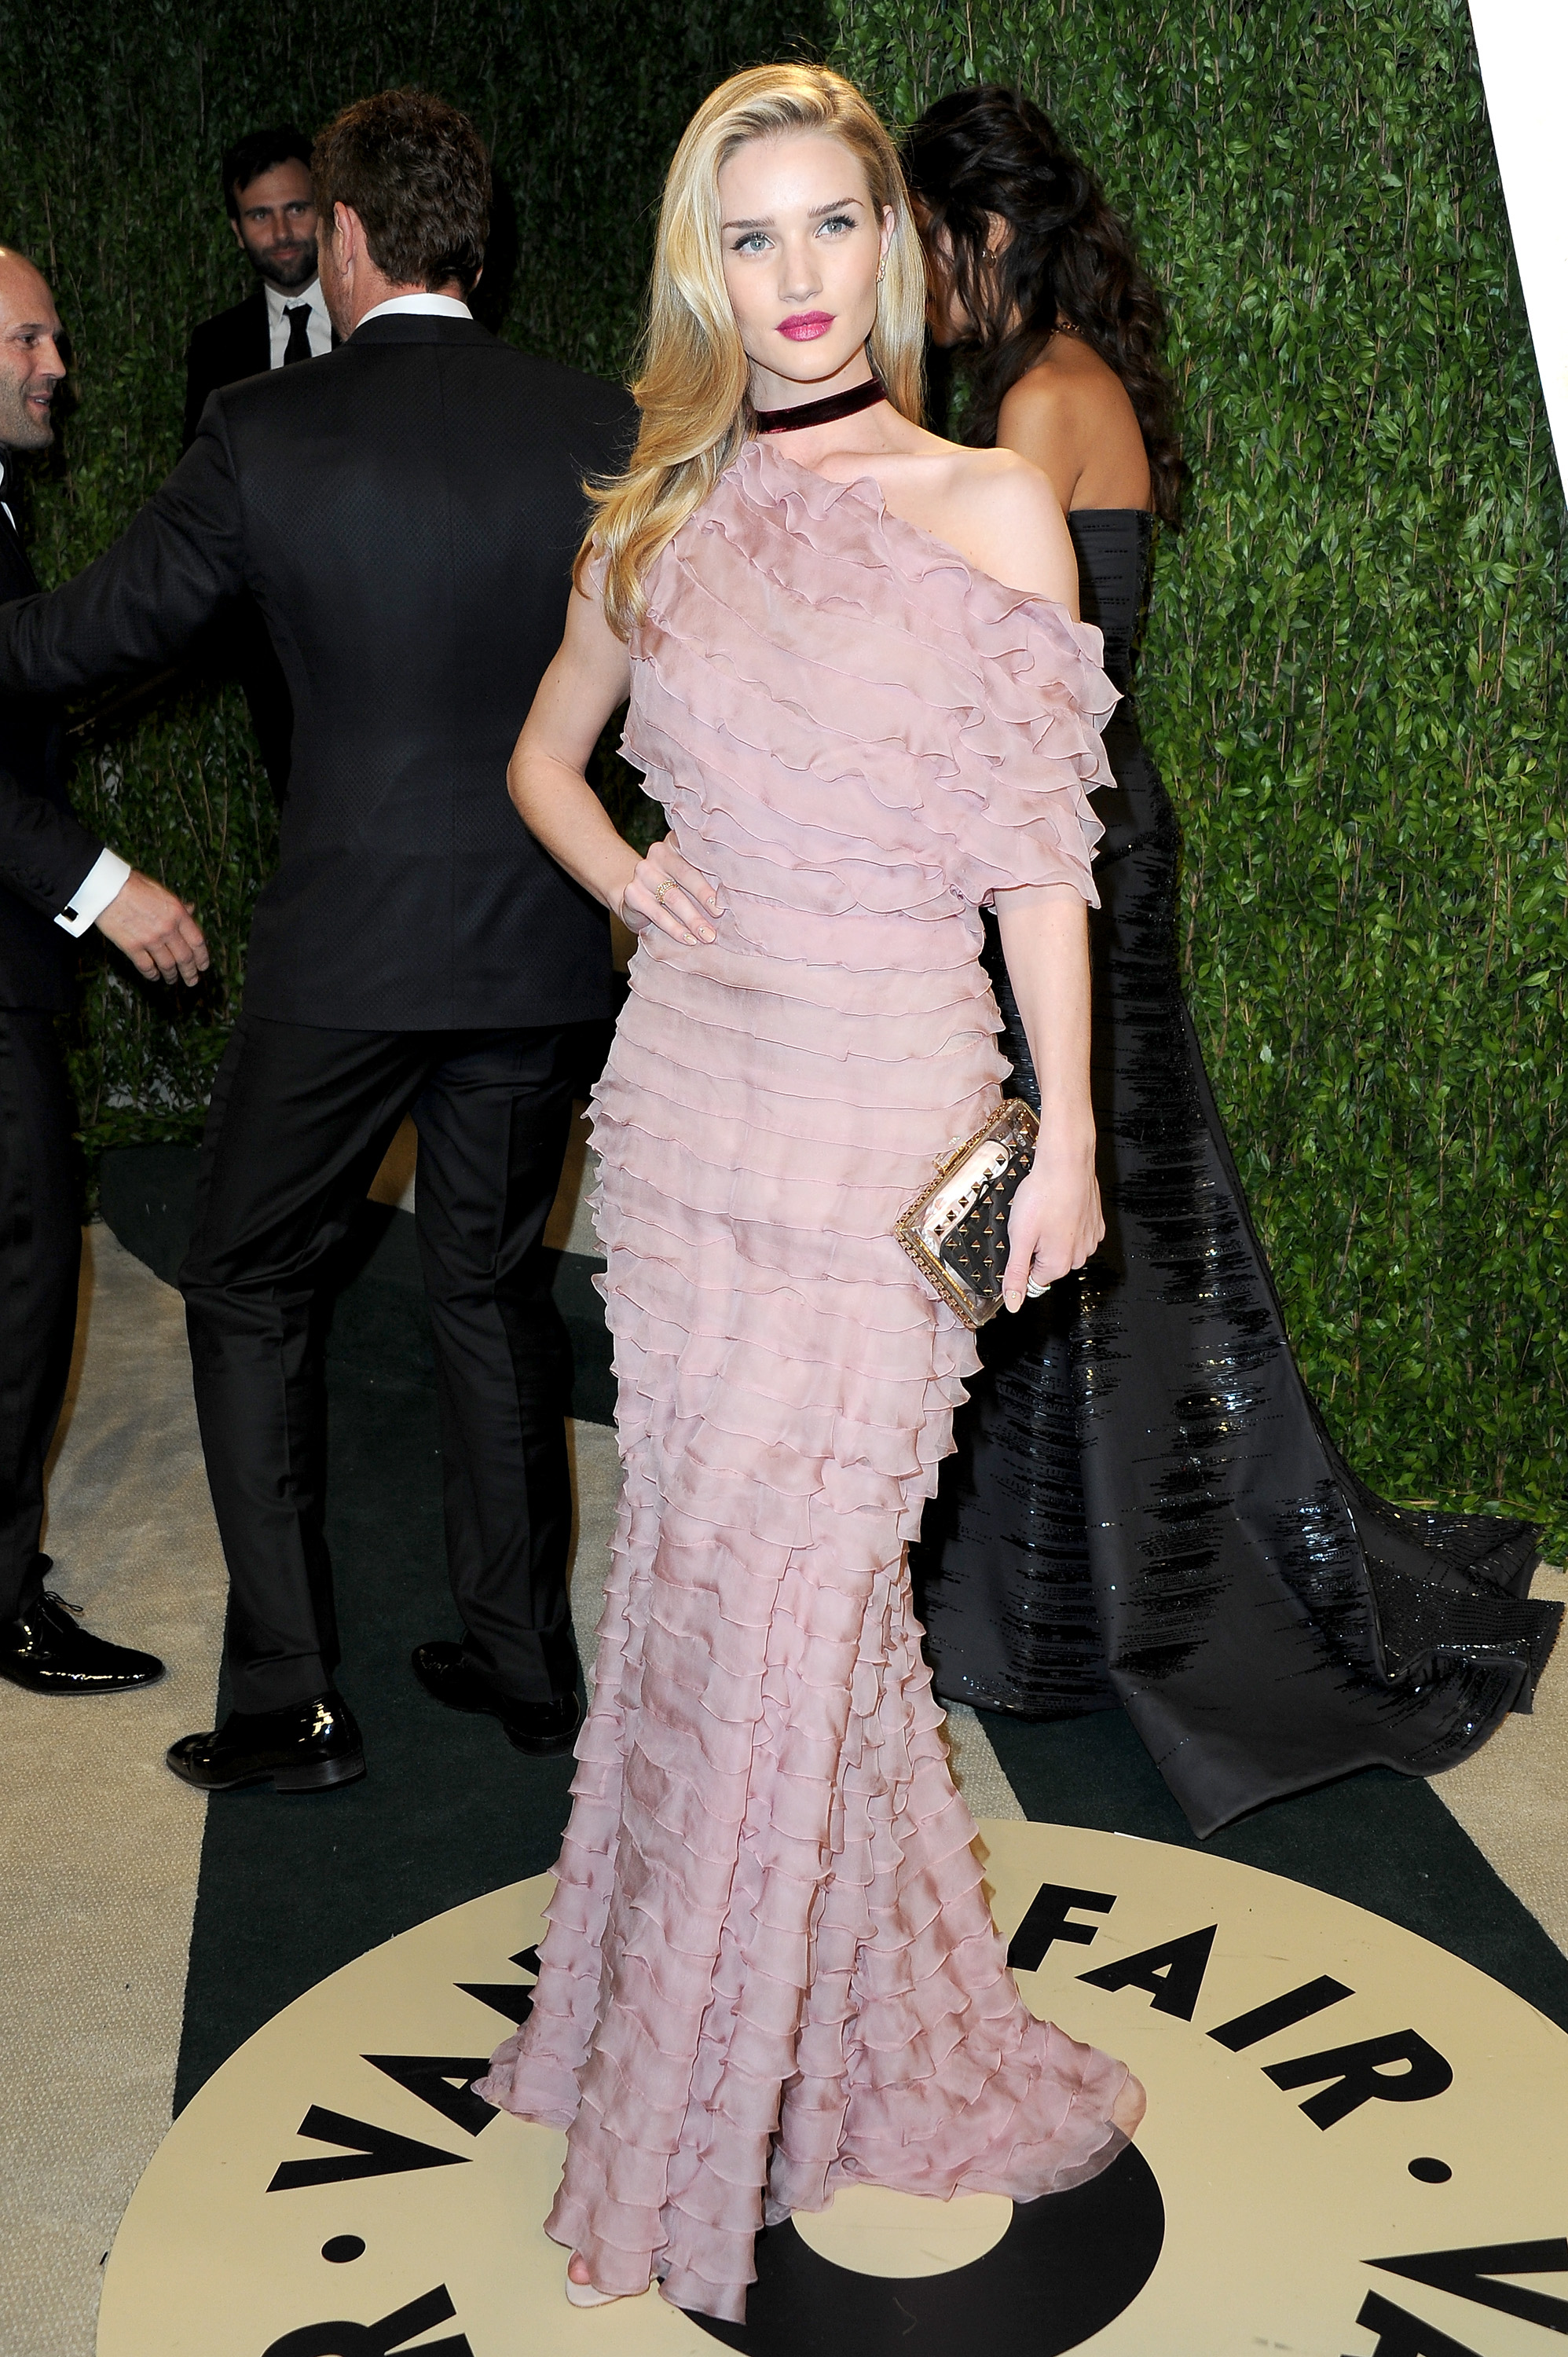 Rosie Huntington-Whiteley arrived at the Vanity Fair Oscar party on Sunday night.